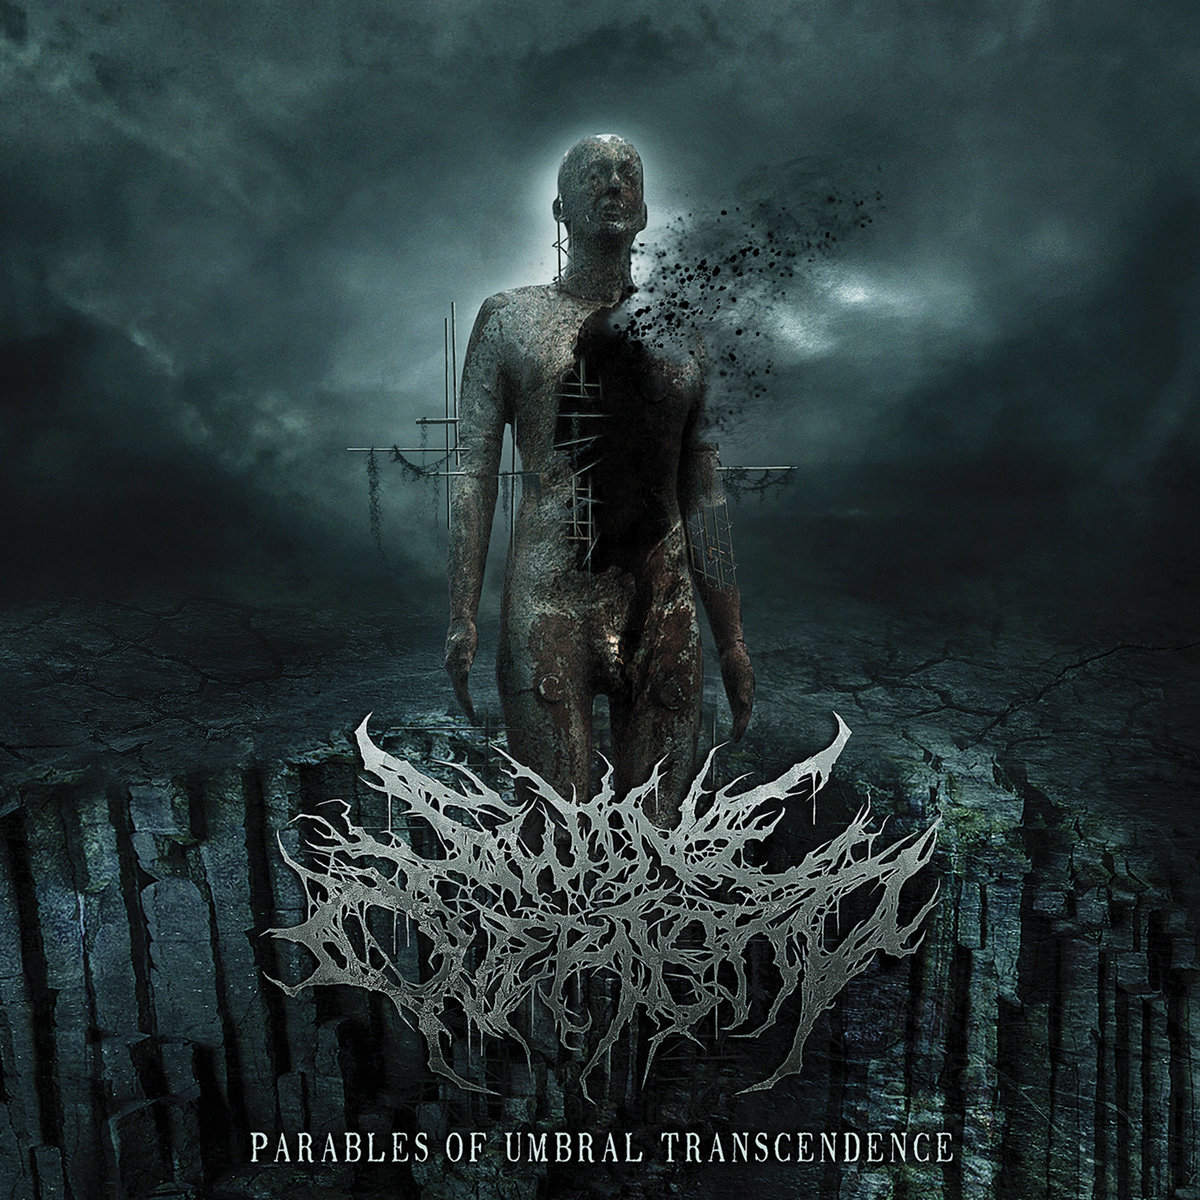 parables of umbral transcendence gore house productions